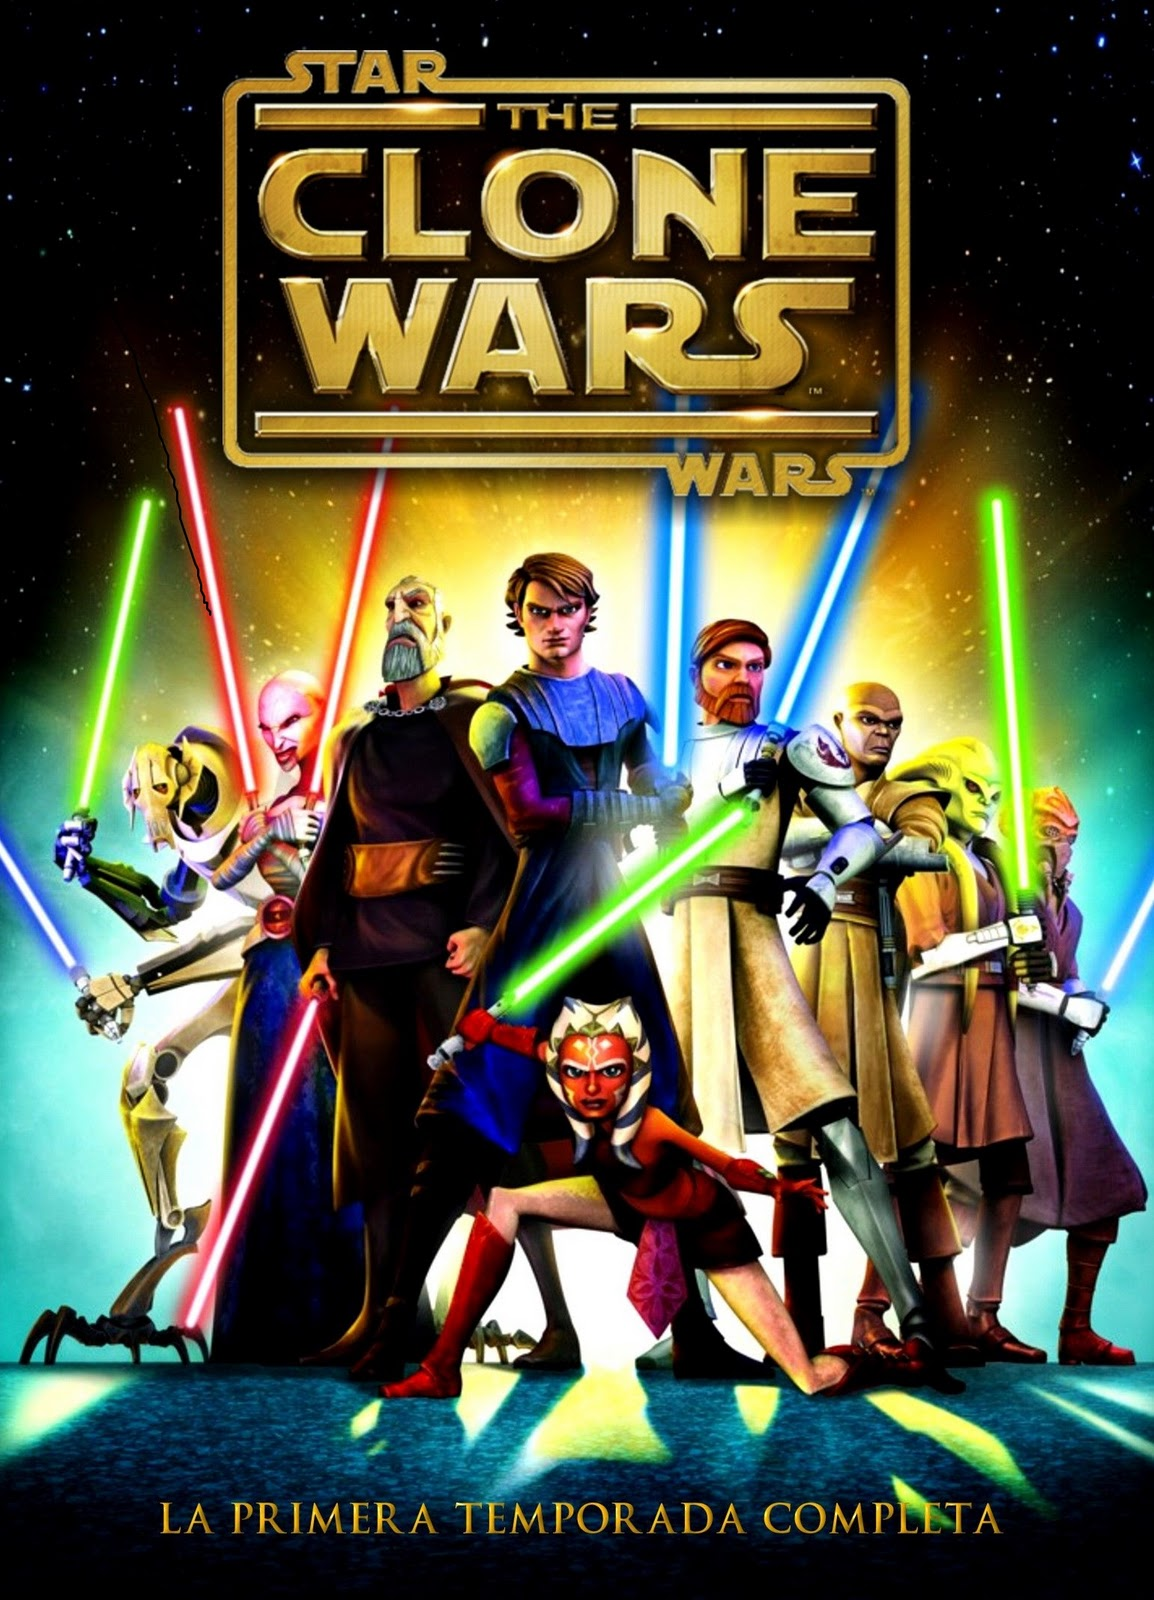 Star Wars The Clone Wars Cartoon Porn